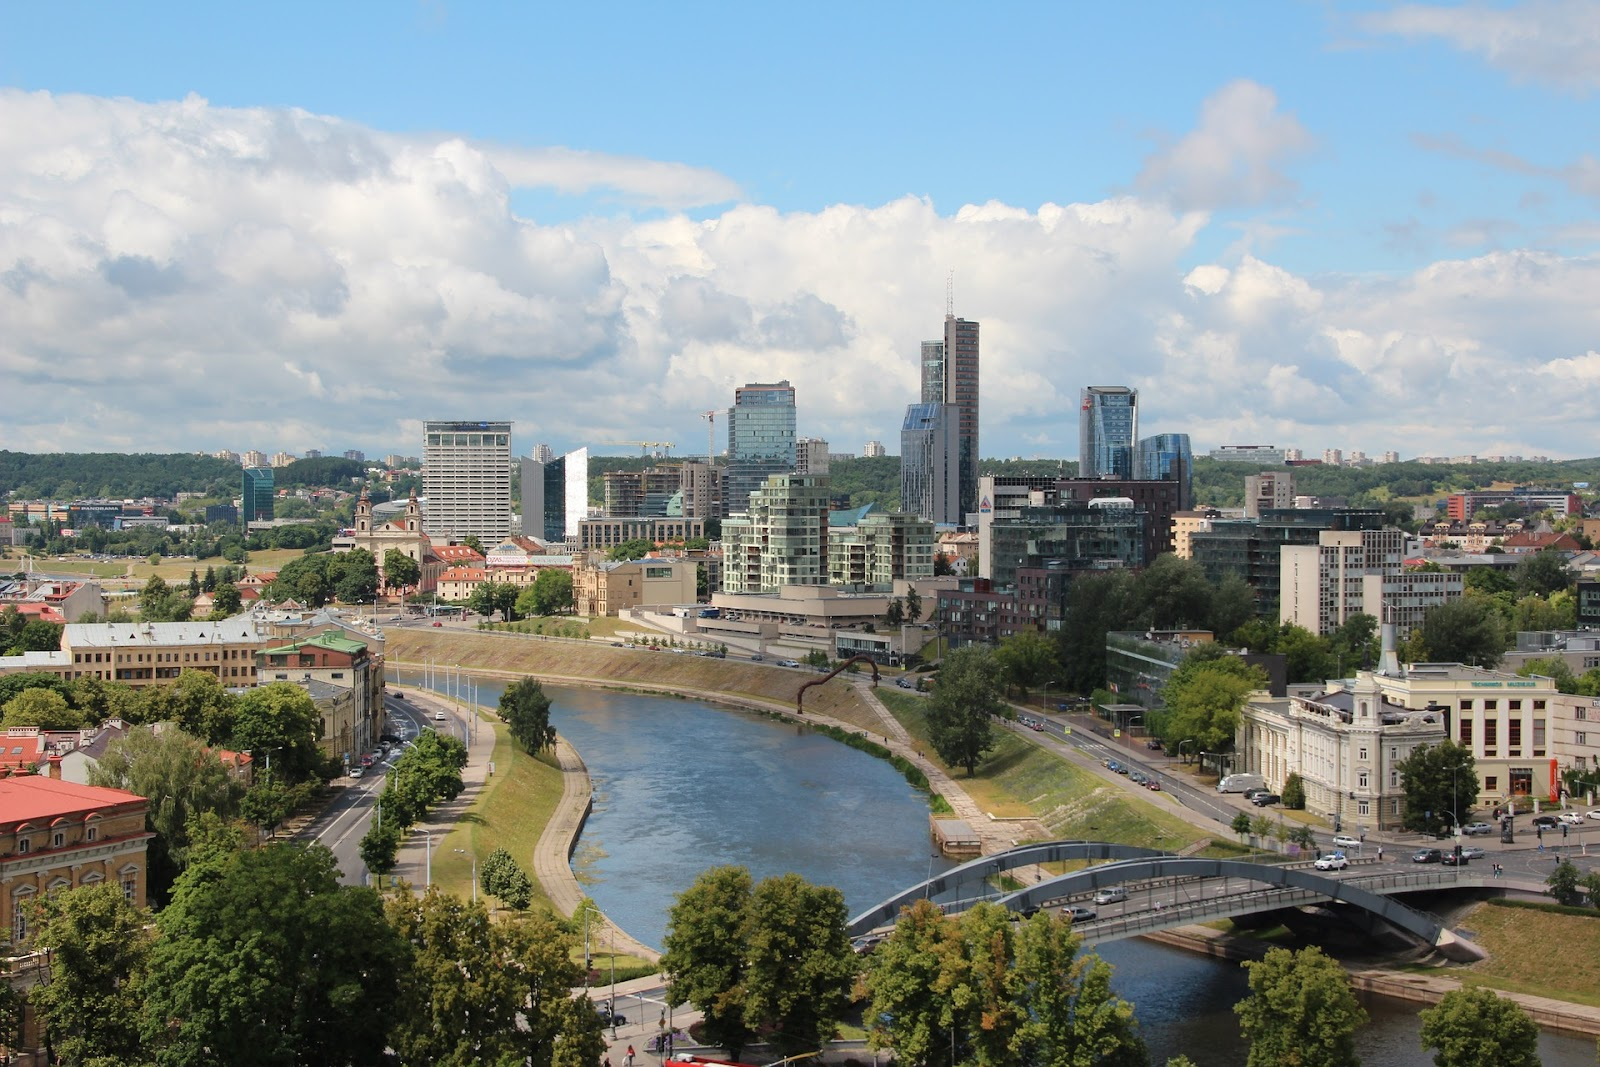 the skyline of vilnius across the river. aerial view, some modern skyscrapers and traditional buildings provide a diverse architectural style. sunny day with some clouds in the distance.